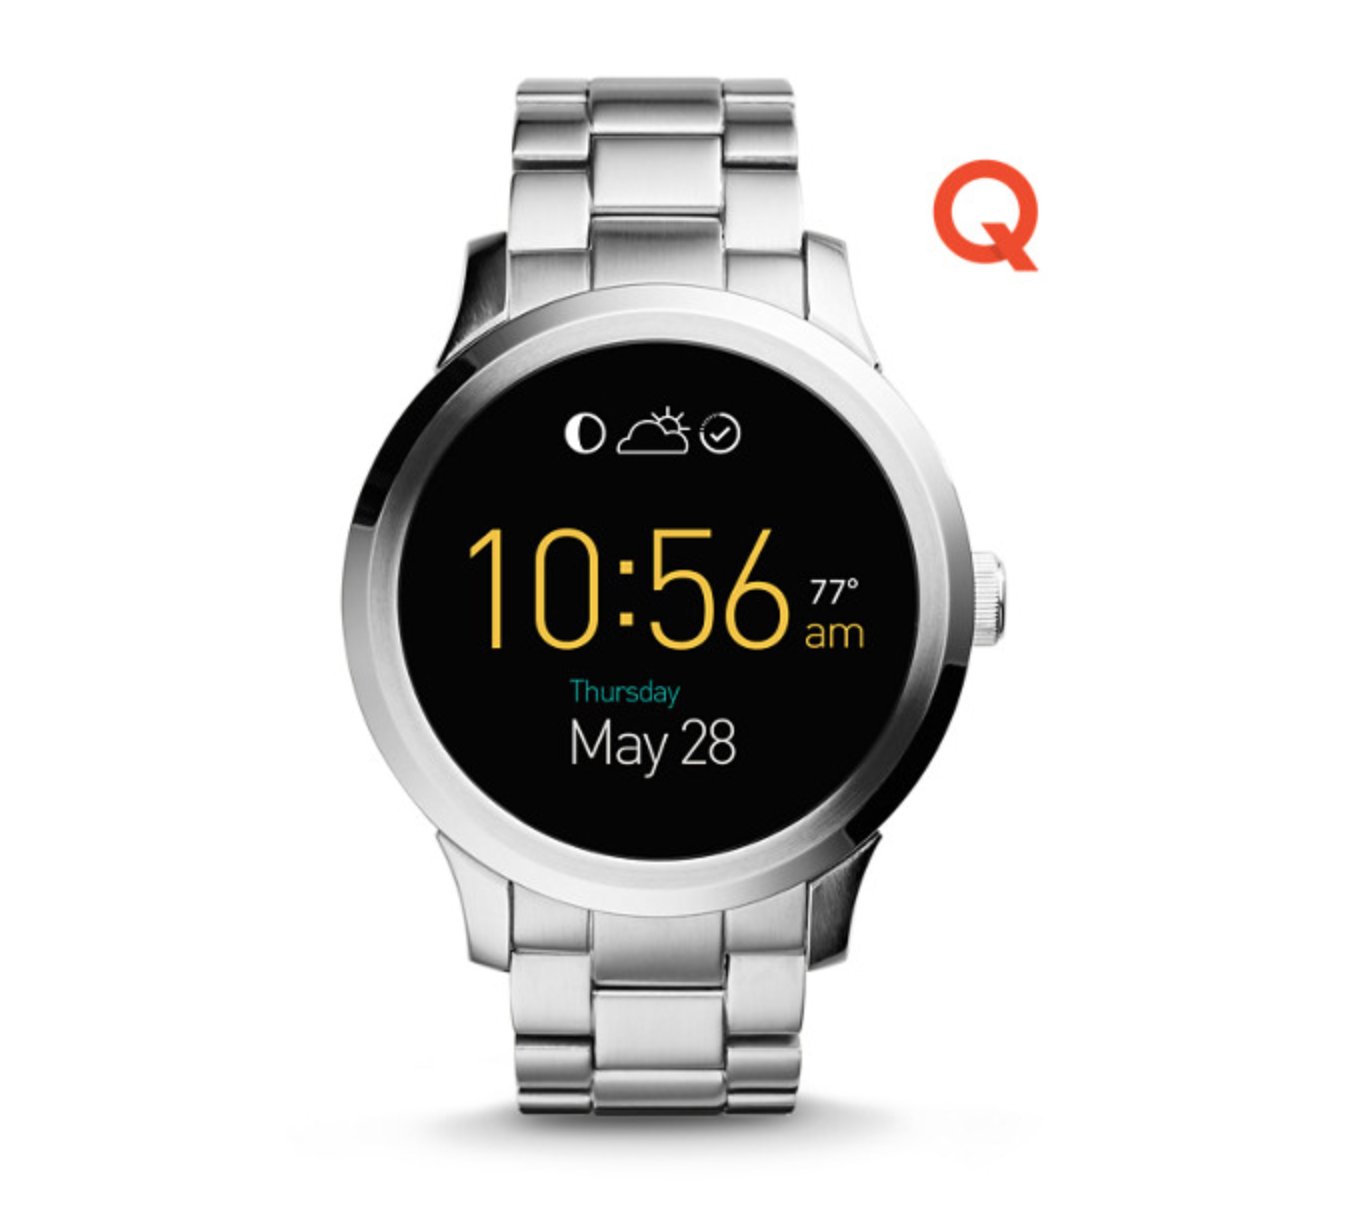 Fossil takes on Apple, launches its own Android Wear smart watch